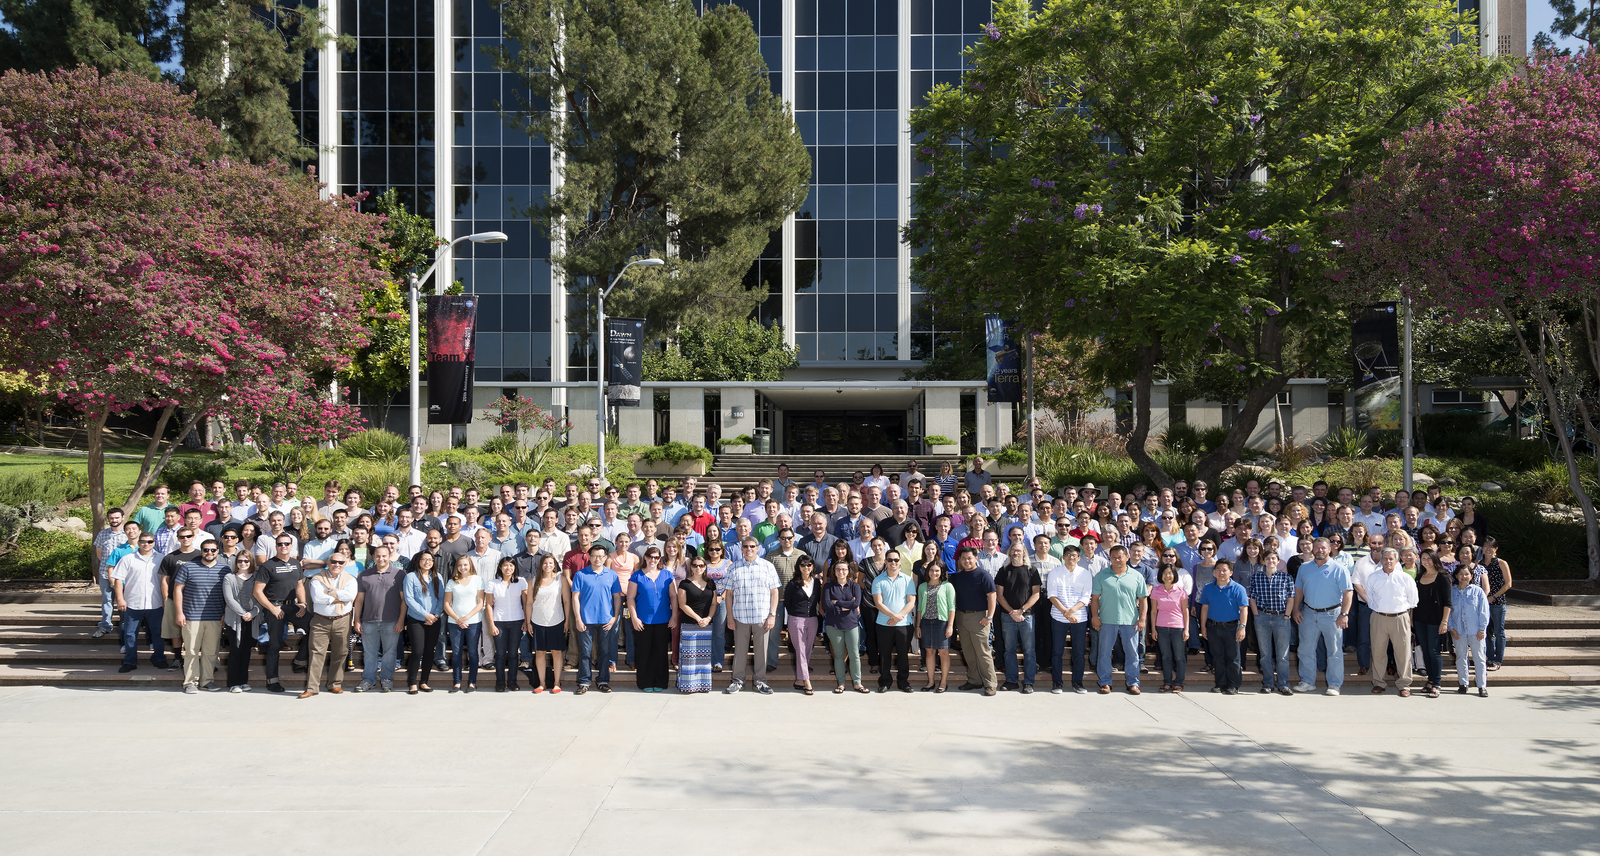 About 100 team members stand in a group photo in front of the steps of a large administration building.